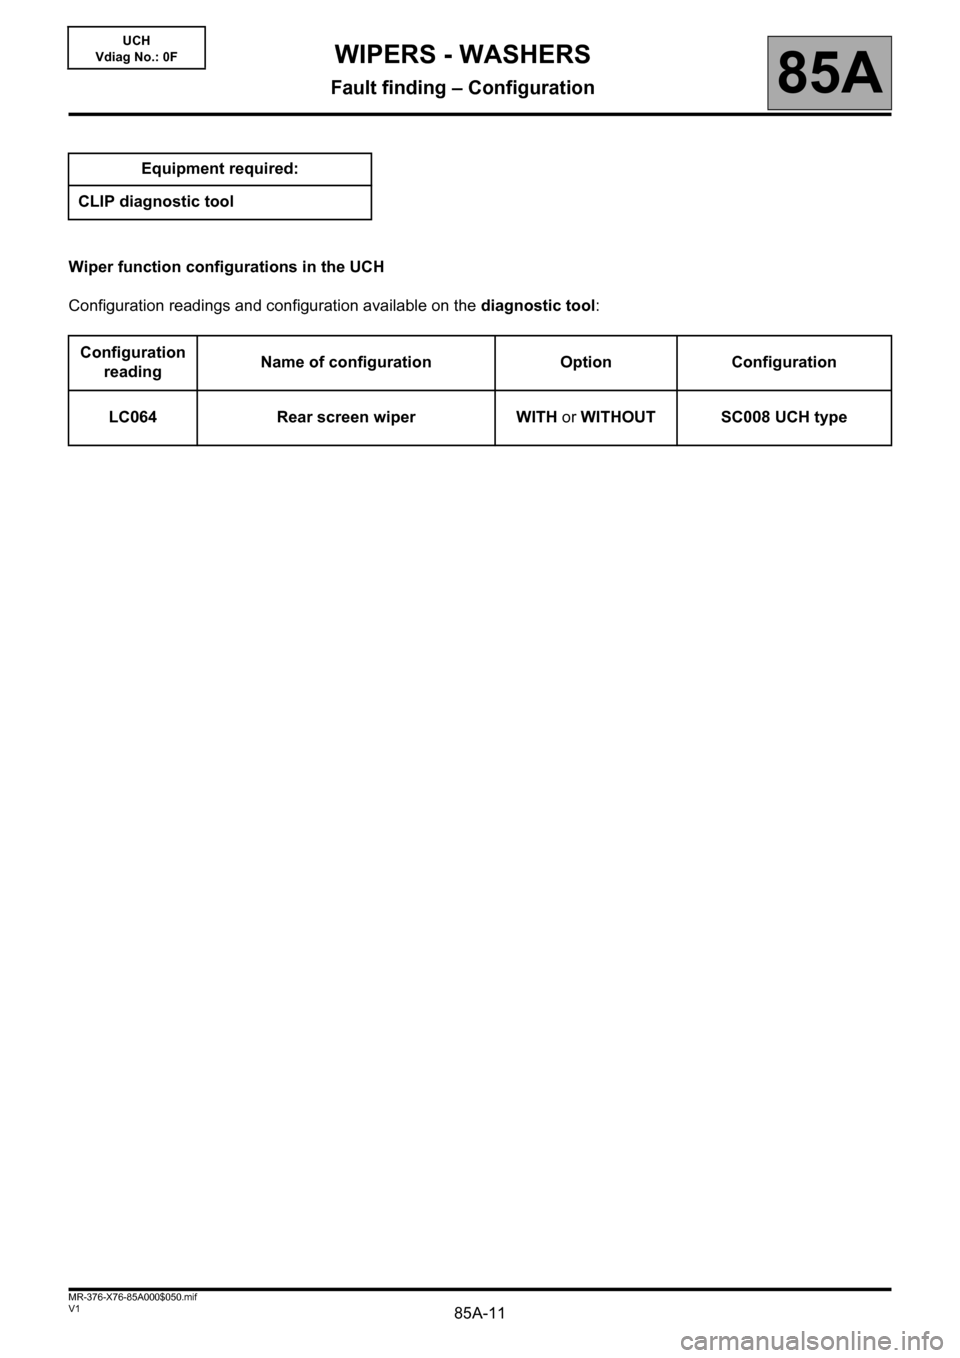 RENAULT KANGOO 2013 X61 / 2.G Wipers And Washers Workshop Manual, Page 11